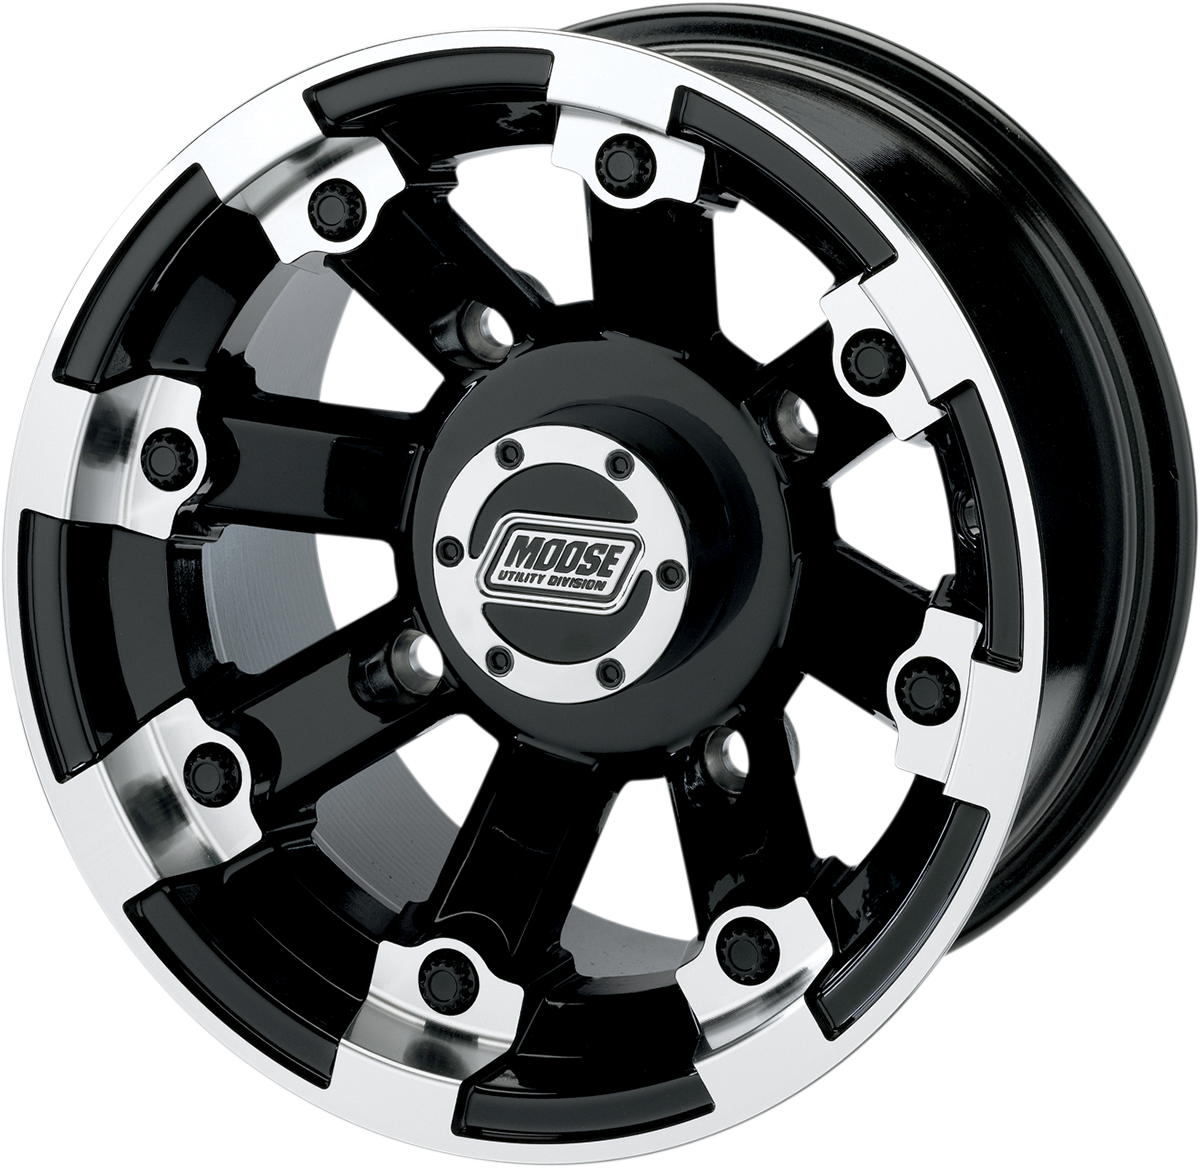 Moose 12x7 / 12x8 4x136 393X vannesarja Can-Am